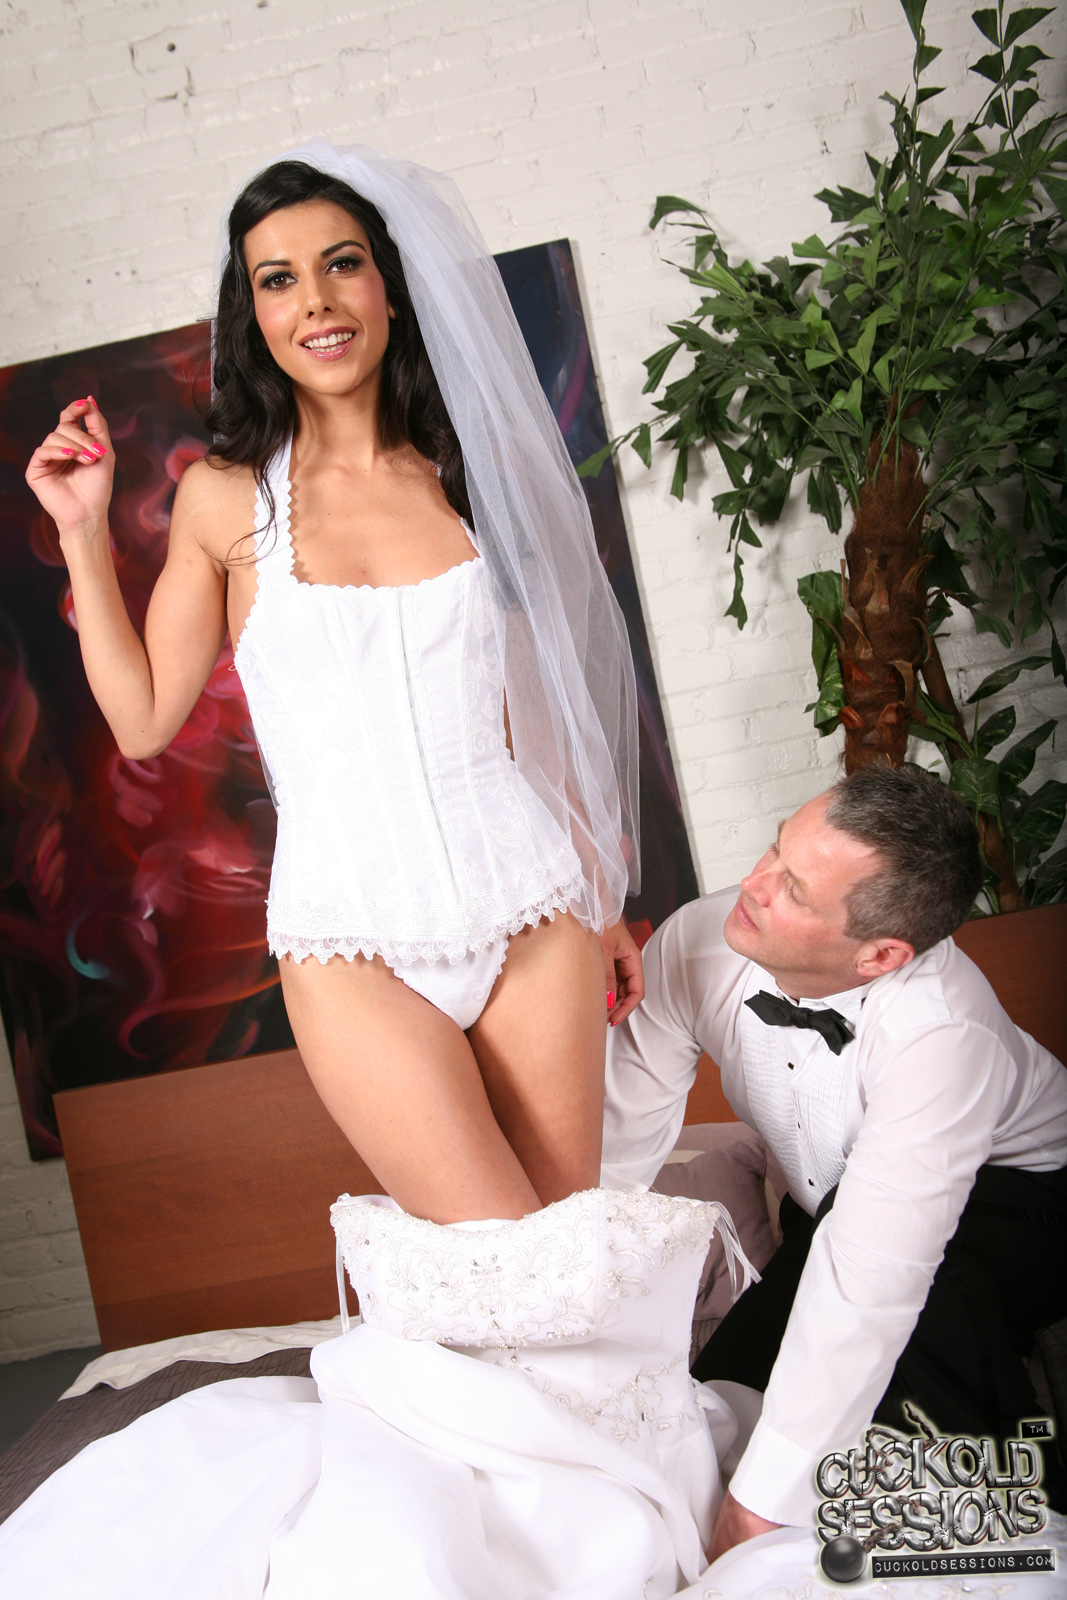 galleries cuckoldsessions content lou charmelle pic 06